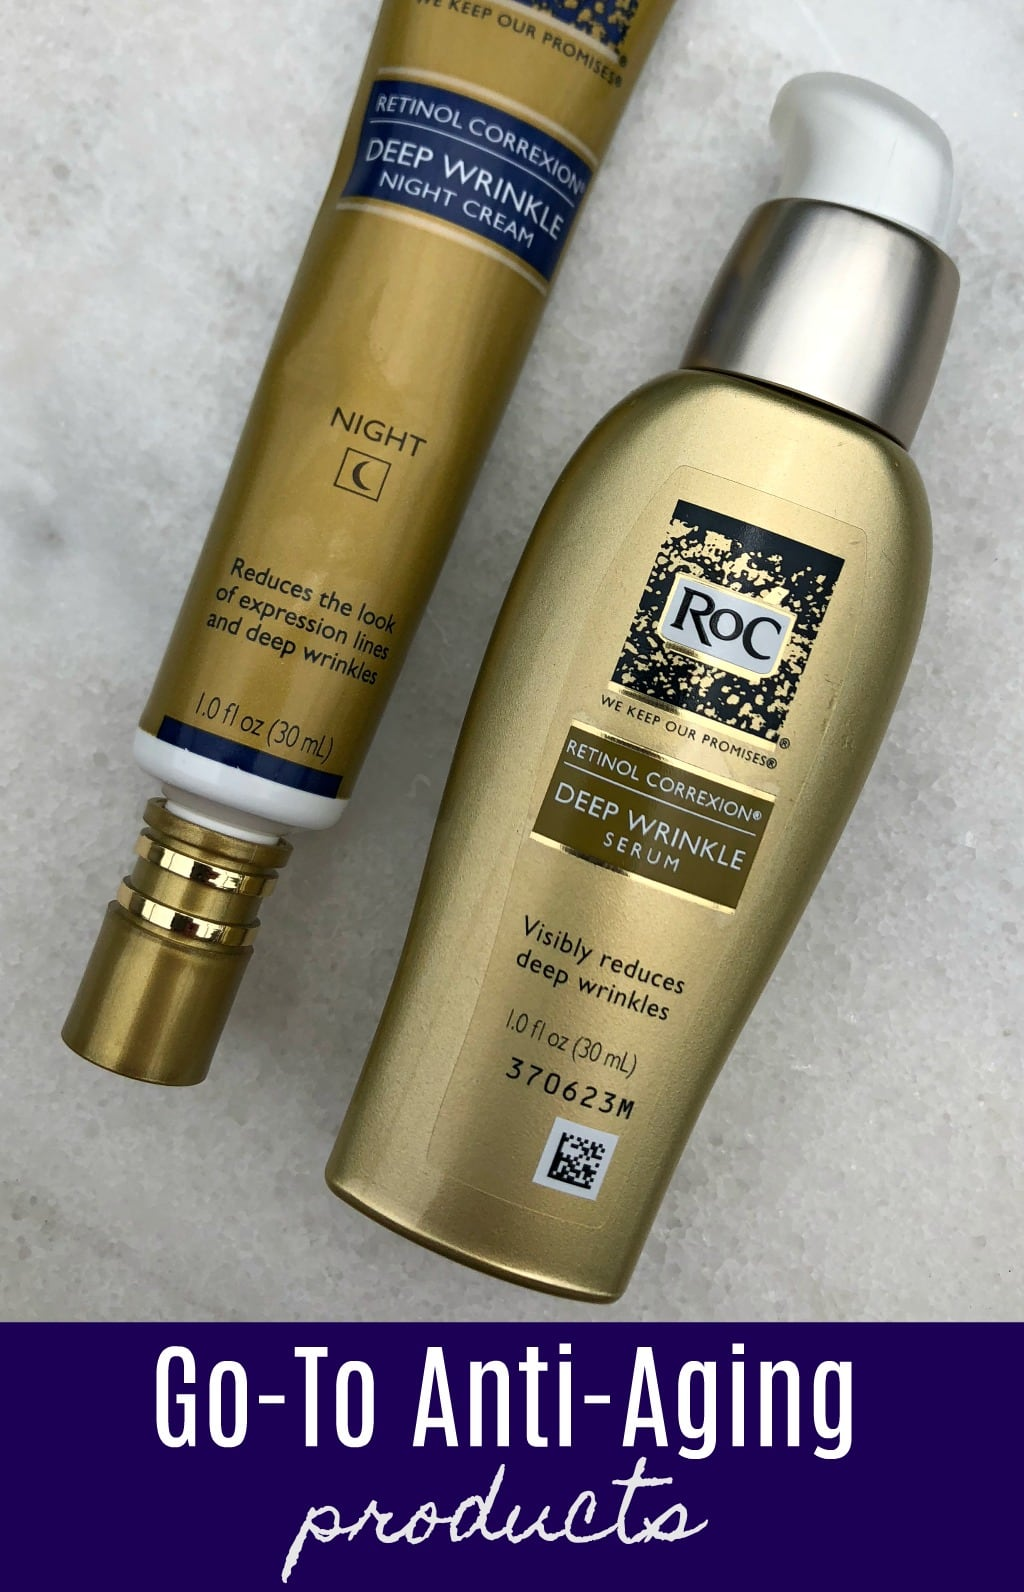 go-to anti-aging products